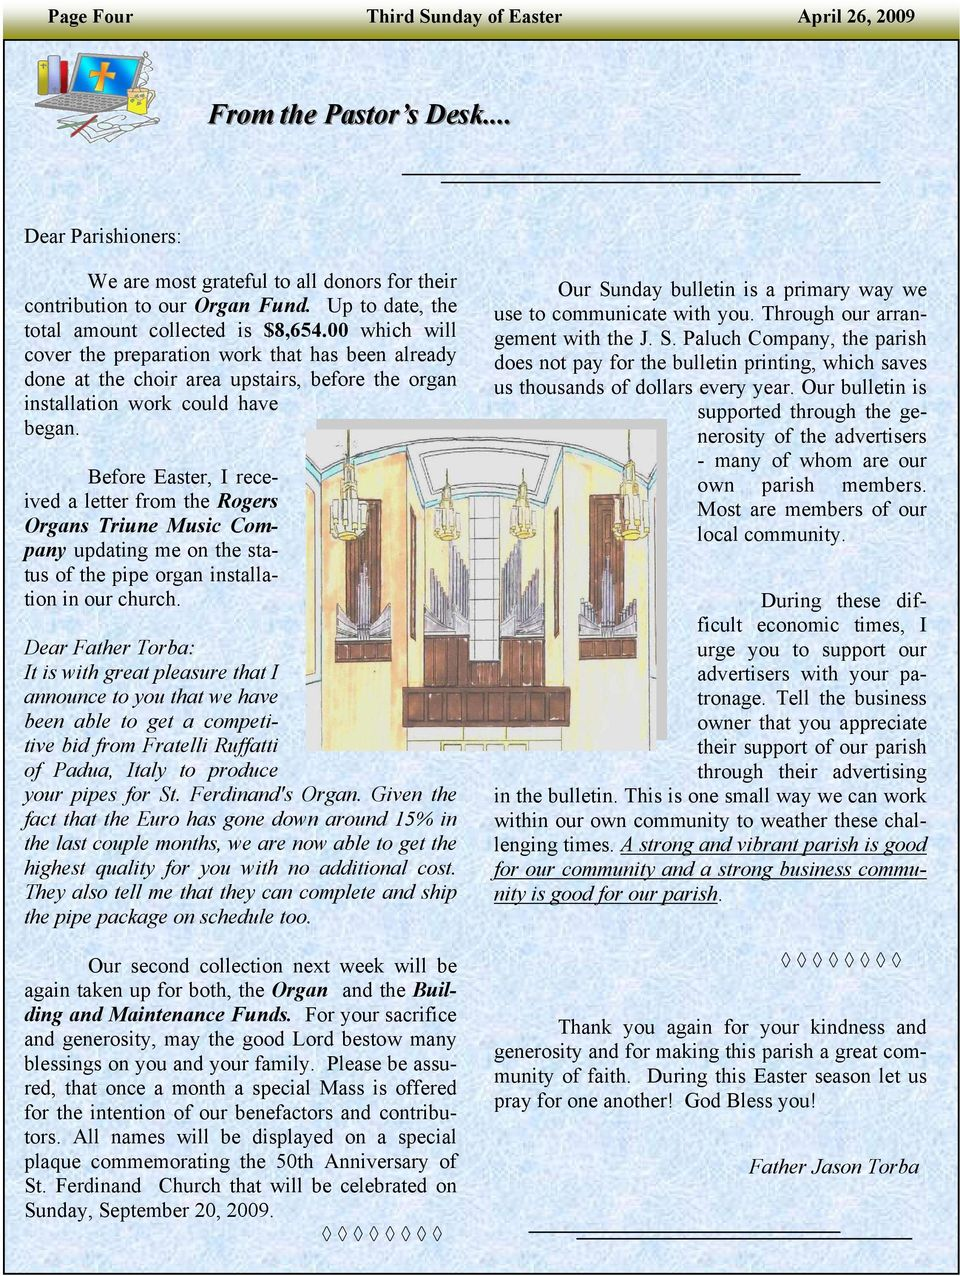 Before Easter, I received a letter from the Rogers Organs Triune Music Company updating me on the status of the pipe organ installation in our church.